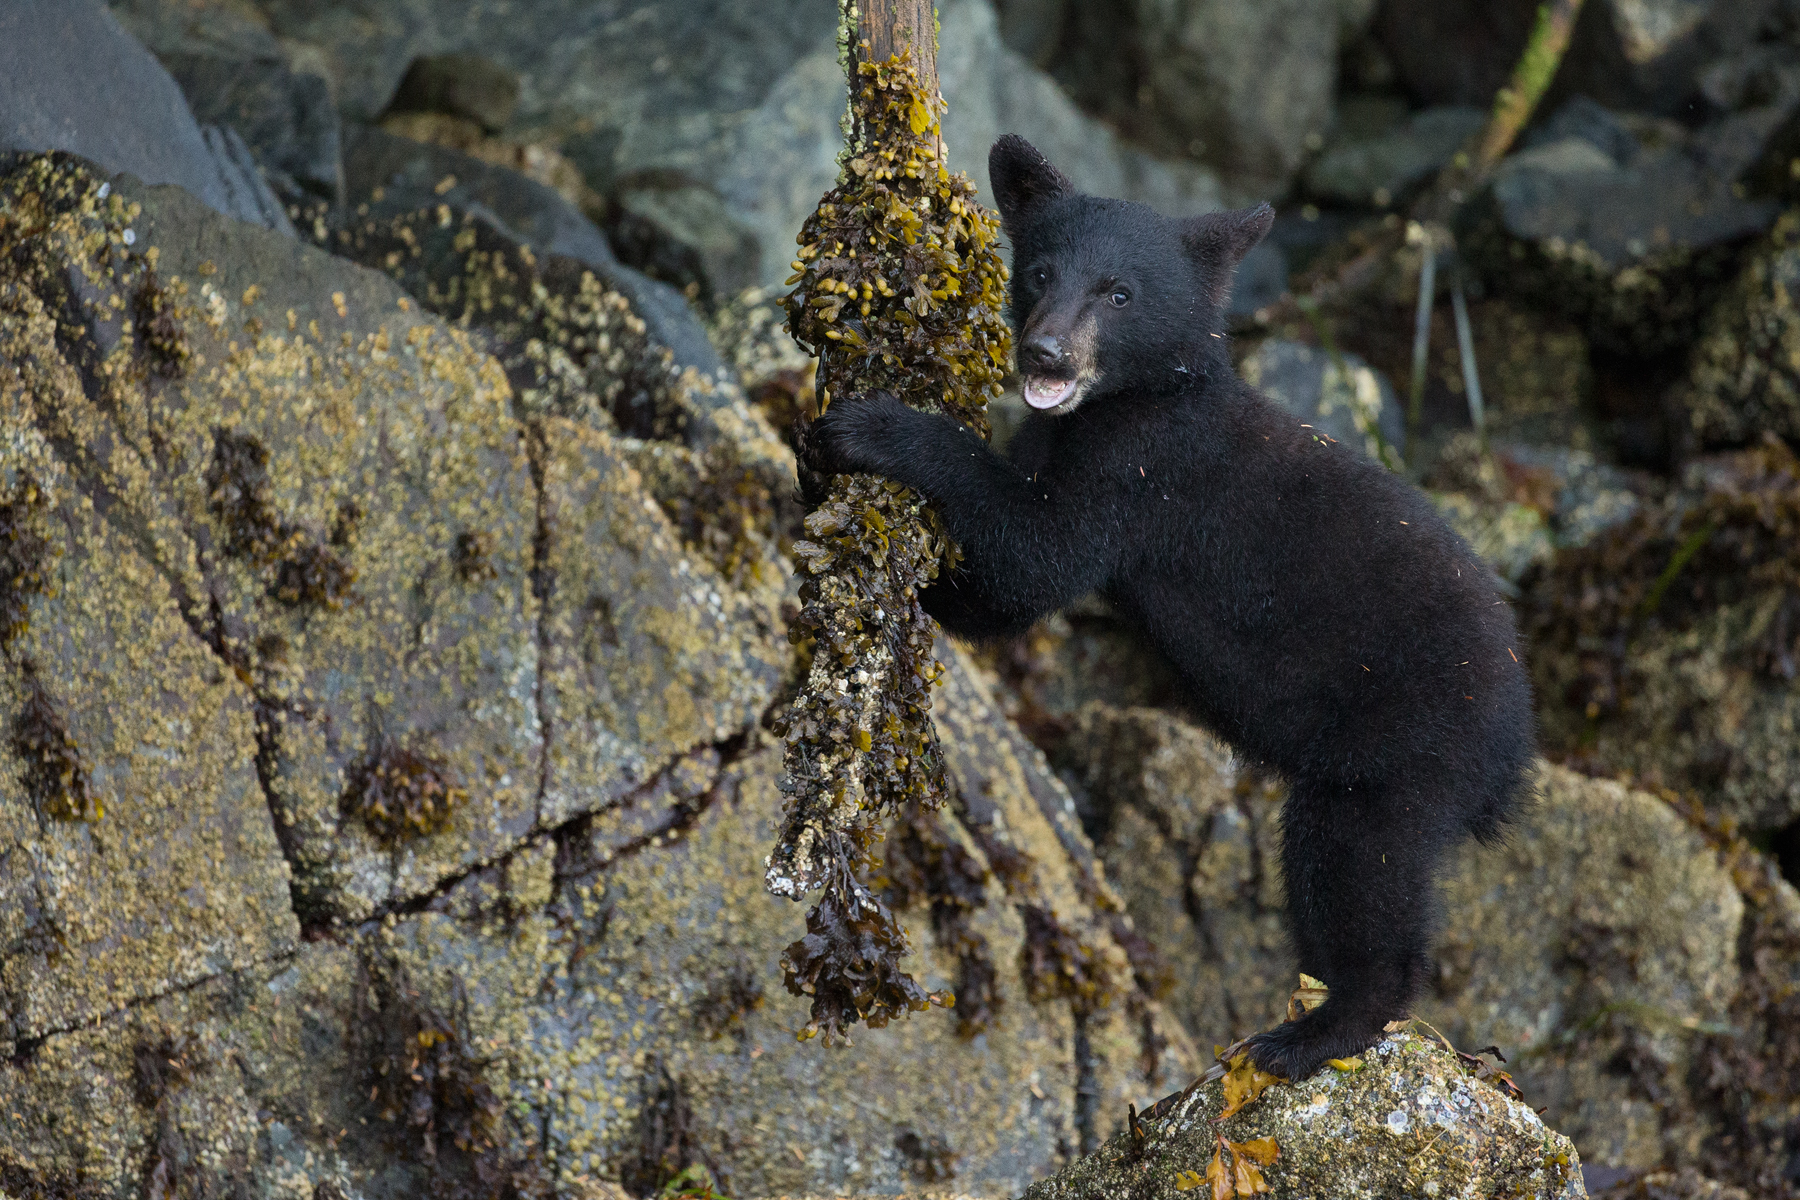 A Black Bear cub plays with a rockweed covered branch on Vancouver Island, B.C, Canada.  Image ©Connor Stefanison